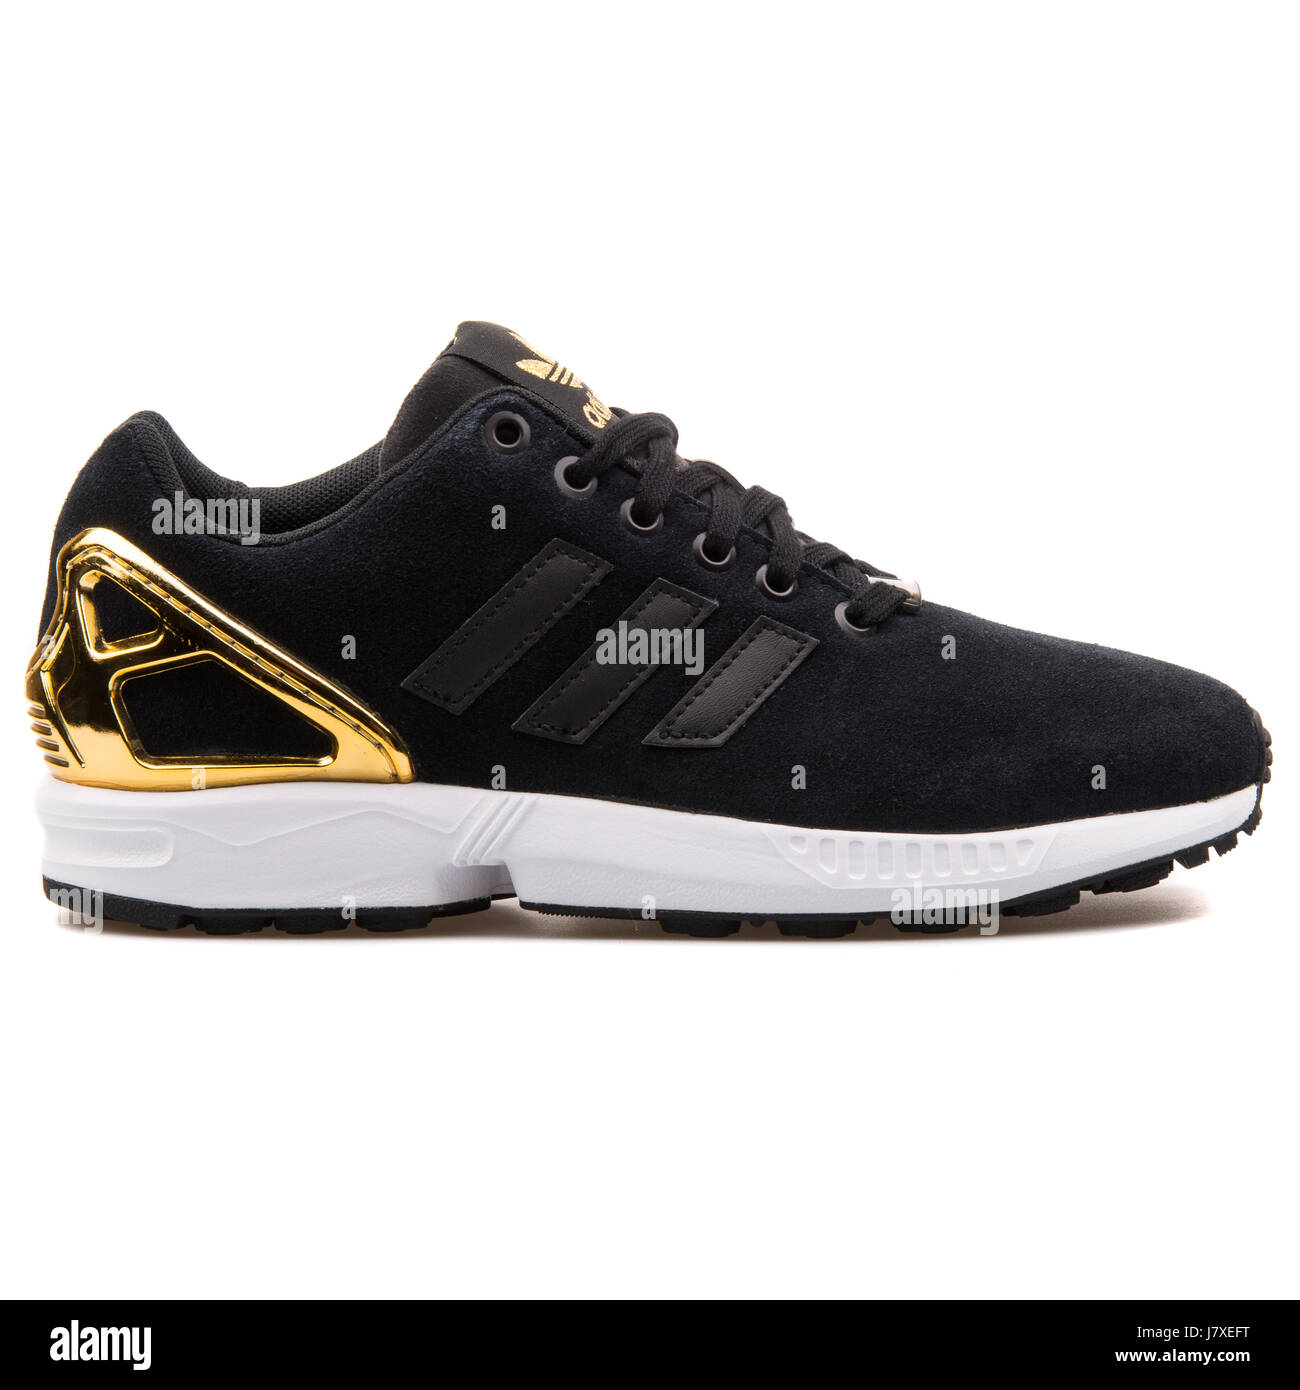 online store 05d04 b6485 Adidas ZX Flux W Women's Black and Gold Sneakers - B35319 ...